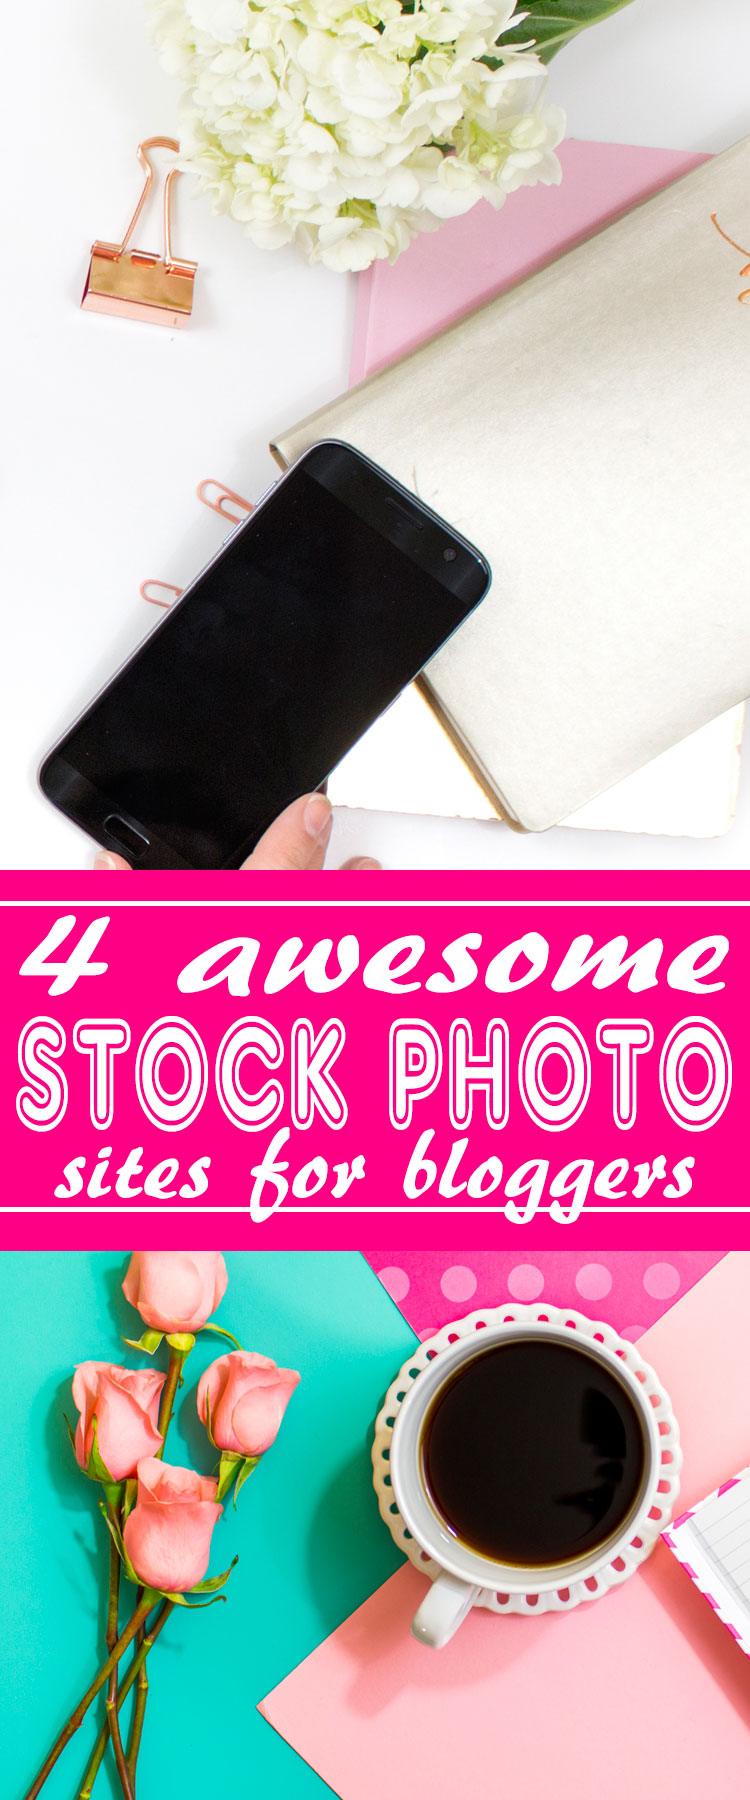 Photography is so important for blog posts. These 4 stock photography sites were created just for bloggers like you. All offer free stuff for bloggers (such as a bunch of free flat-lay photos), inexpensive packages, and most of all -- awesome photographs! Bloggers can create hundreds of different images, instantly, for all of your blog posts and social media content! Make your blog beautiful. :) http://letgoofbeingperfect.com/